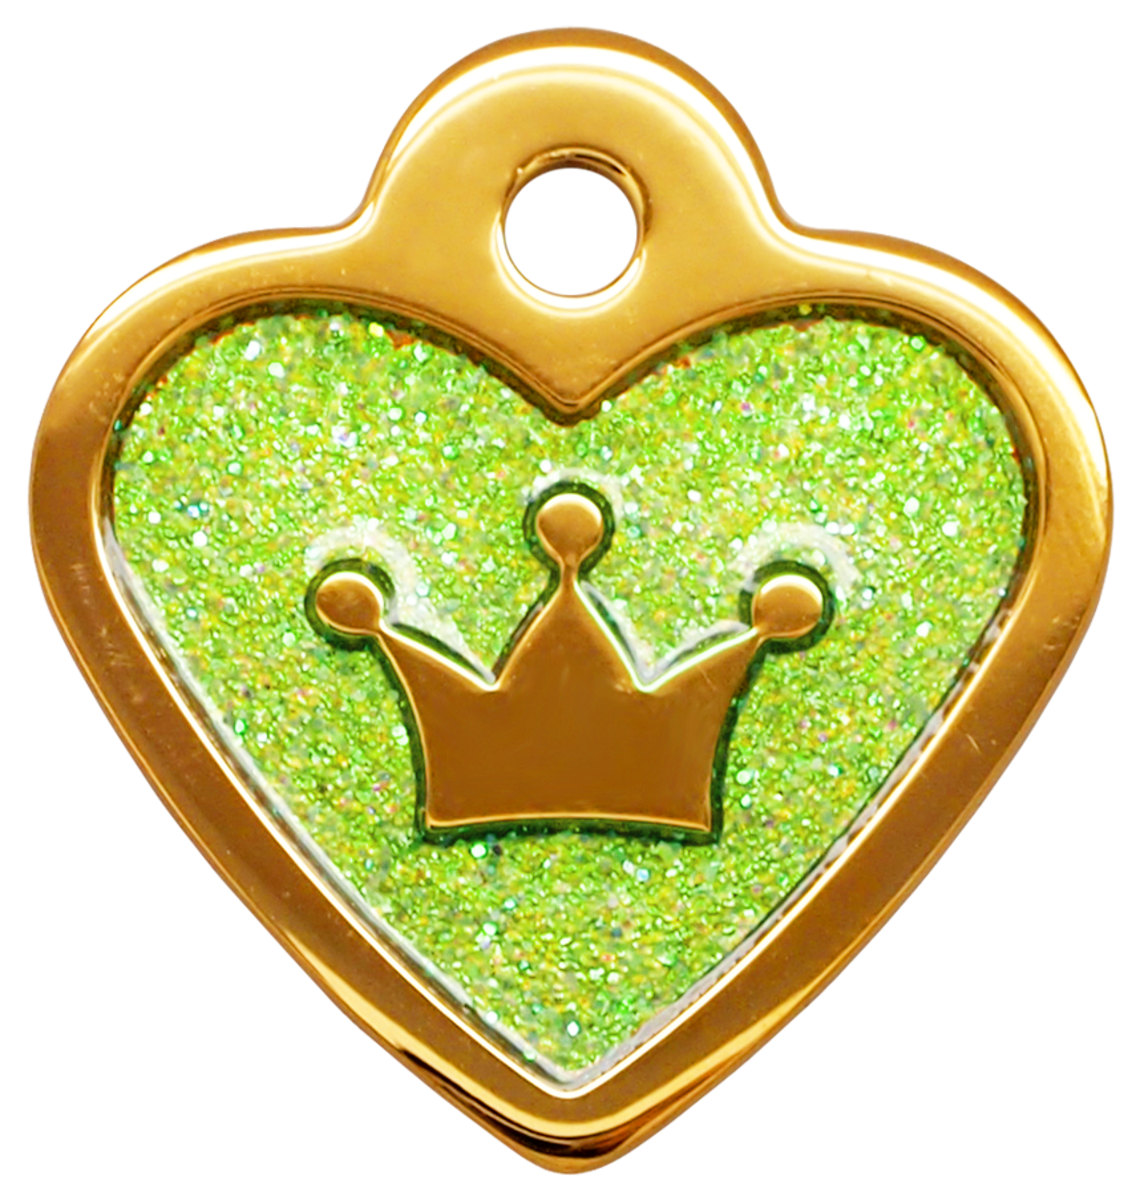 Glitter clipart green glitter. Therese tag pet accessories